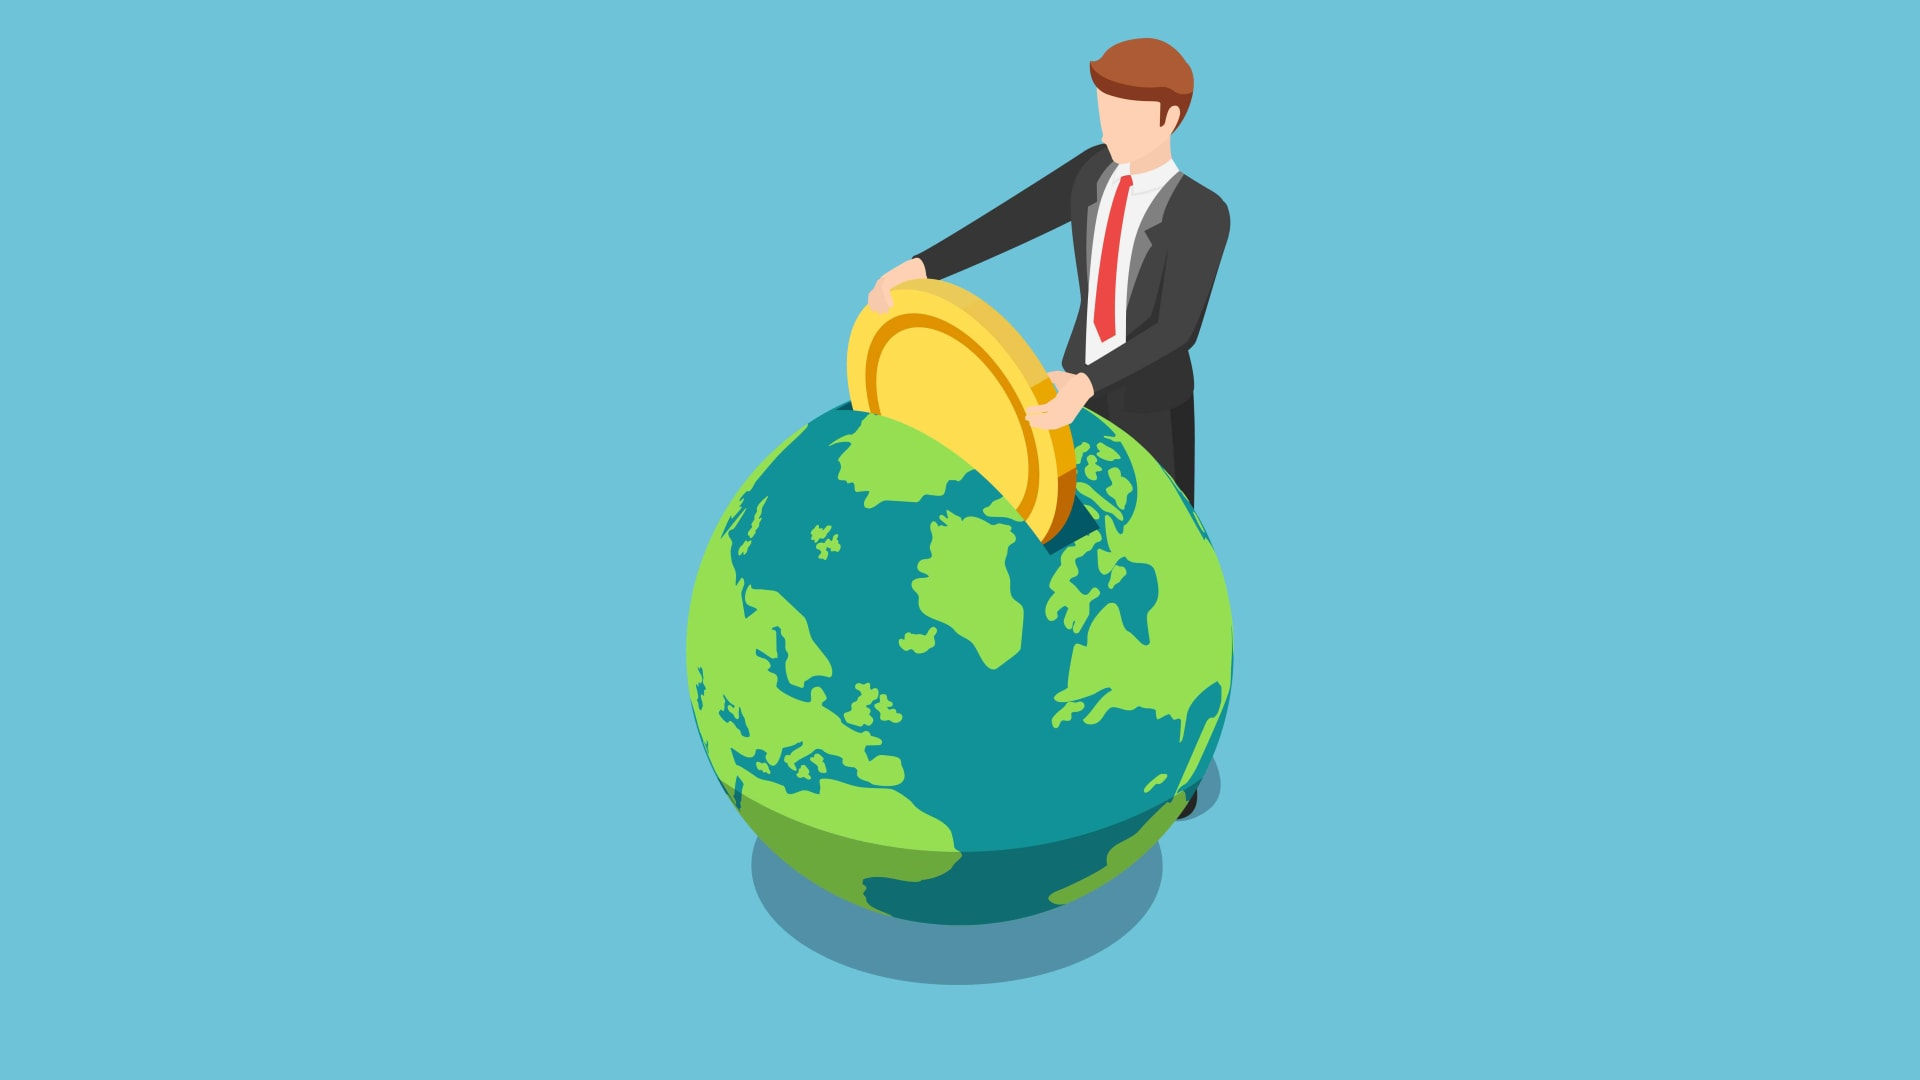 How Conscious Capitalism Can Help the Planet